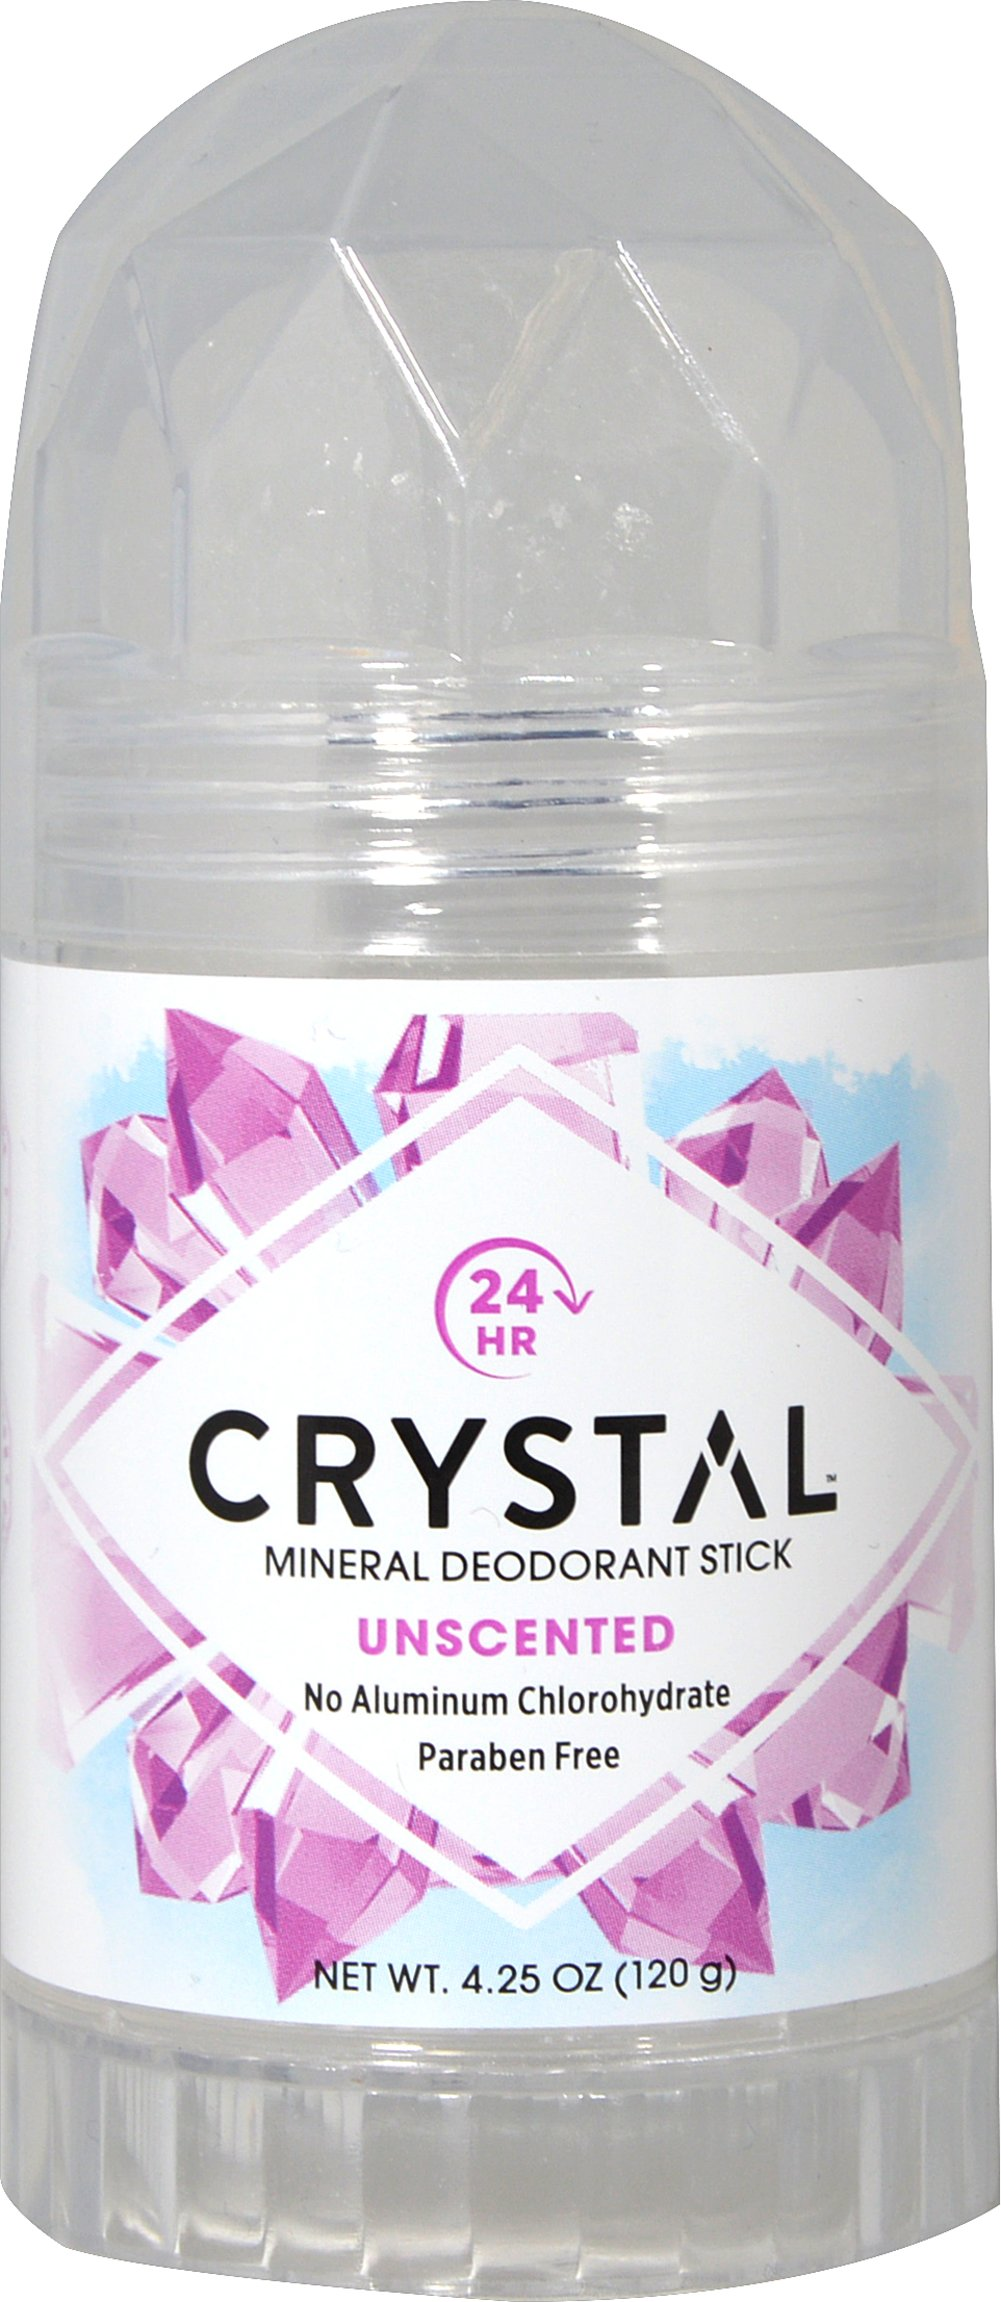 Crystal® Body Deodorant Stick <p><strong>From the Manufacturer's Label: </strong></p><p>Natural Deodorant Protection! Crystal Body  Deodorant® is made of Natural Mineral Salts which prevent body odor by creating an invisible protective barrier against odor-causing bacteria. It is non-sticky, non-staining, leaves no white residue and can be used by both men and women.</p><p>Manufactured by Crystal® Body Deodorant.</p><p>Para